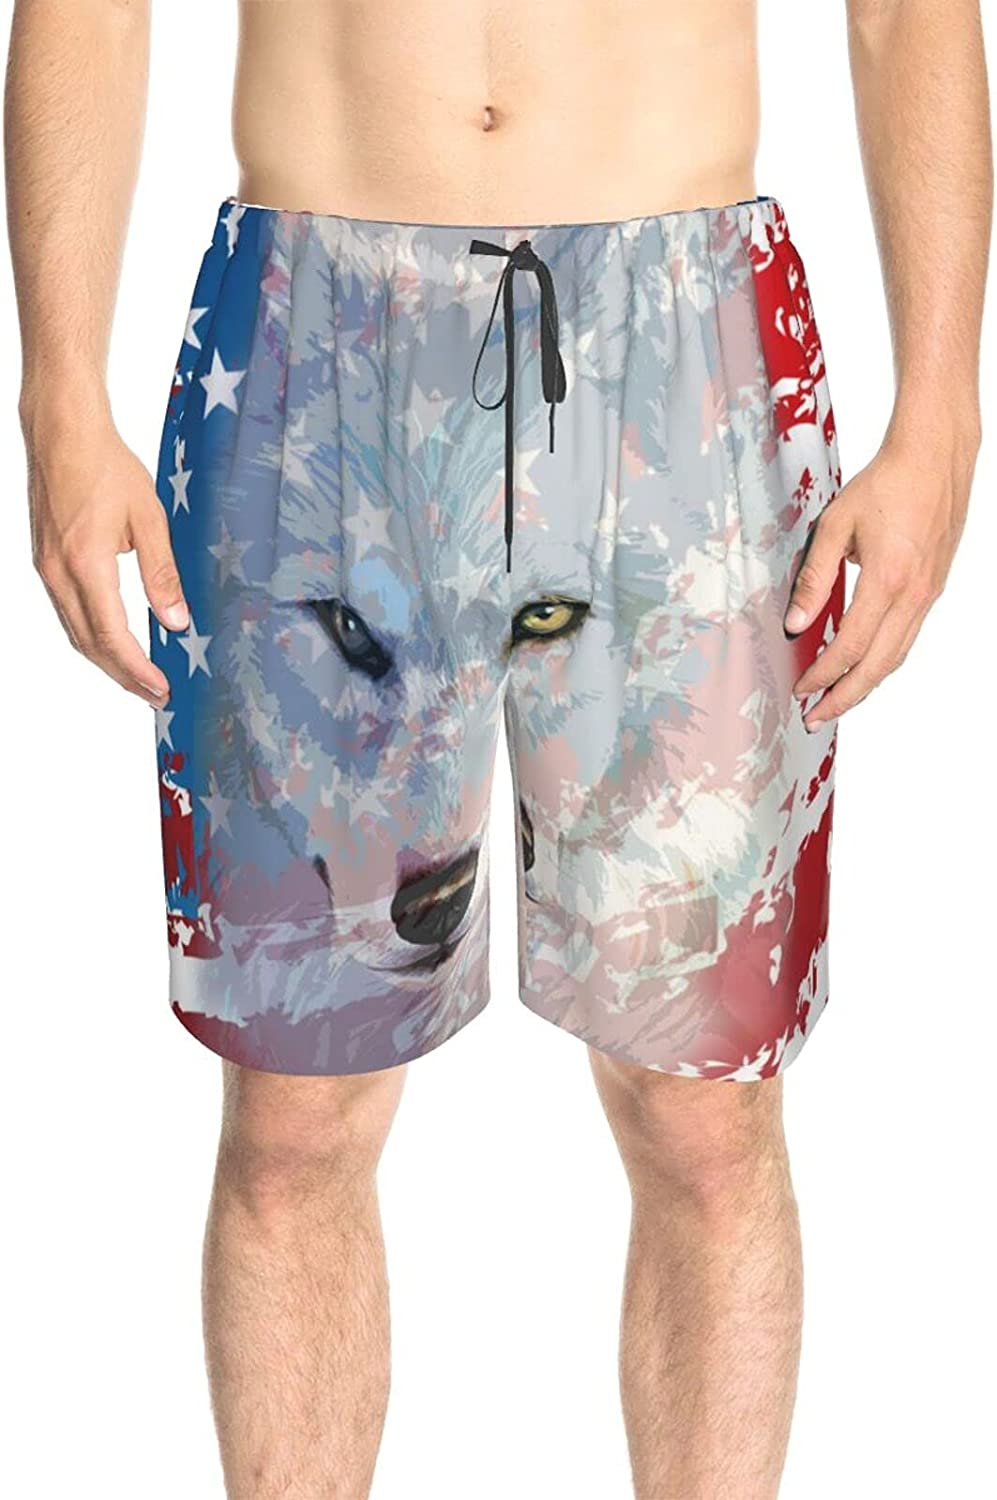 Mens Bathing Suits America Flag with Wolf Swim Boardshorts Drawstring 3D Printed Summer Beach Shorts with Pockets